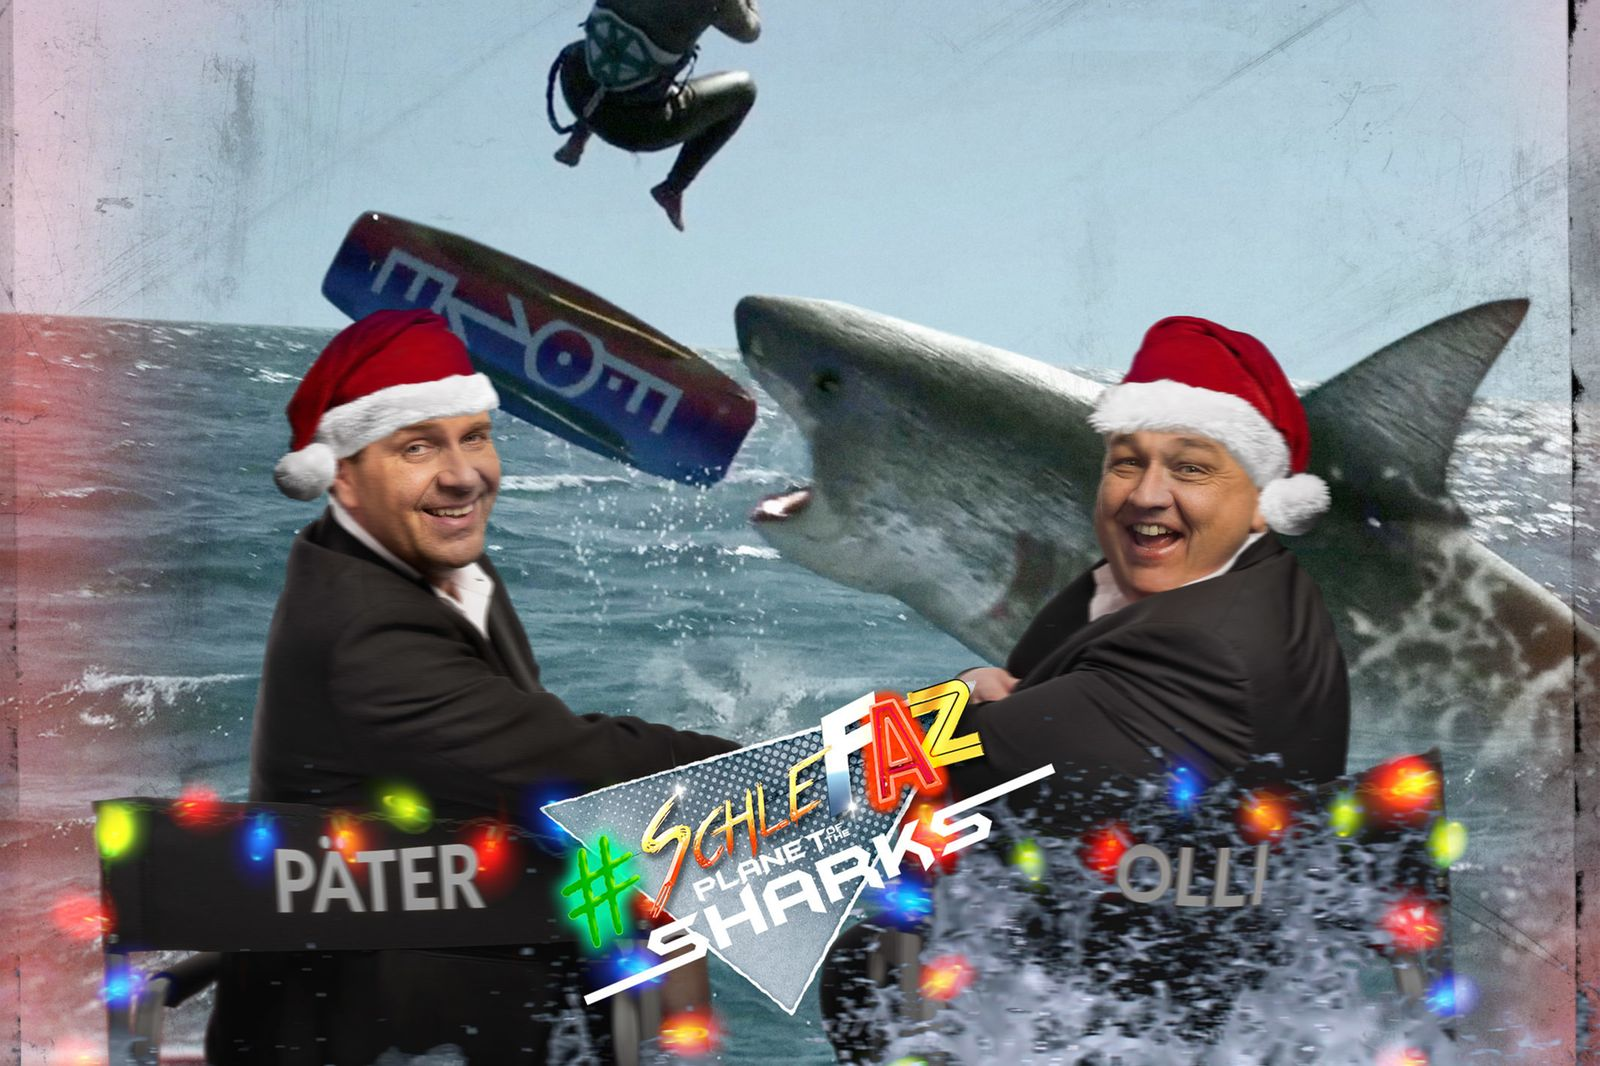 TV/ SchleFaZ: Planet of the Sharks